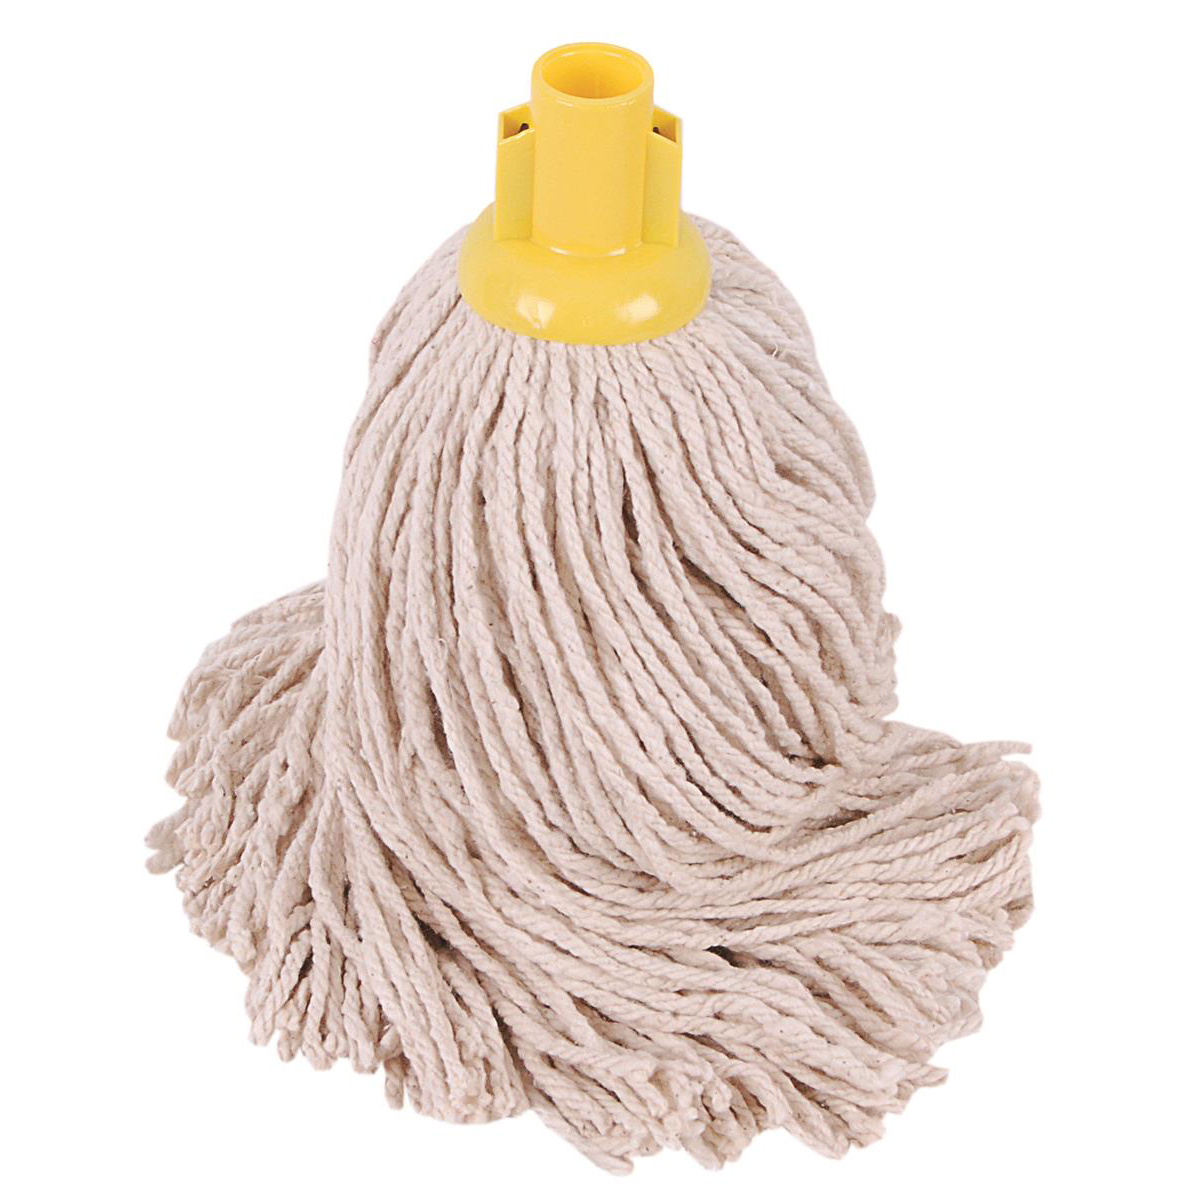 Robert Scott & Sons PY Socket Mop for Smooth Surfaces 16oz Yellow Ref 101876YELLOW [Pack 10]